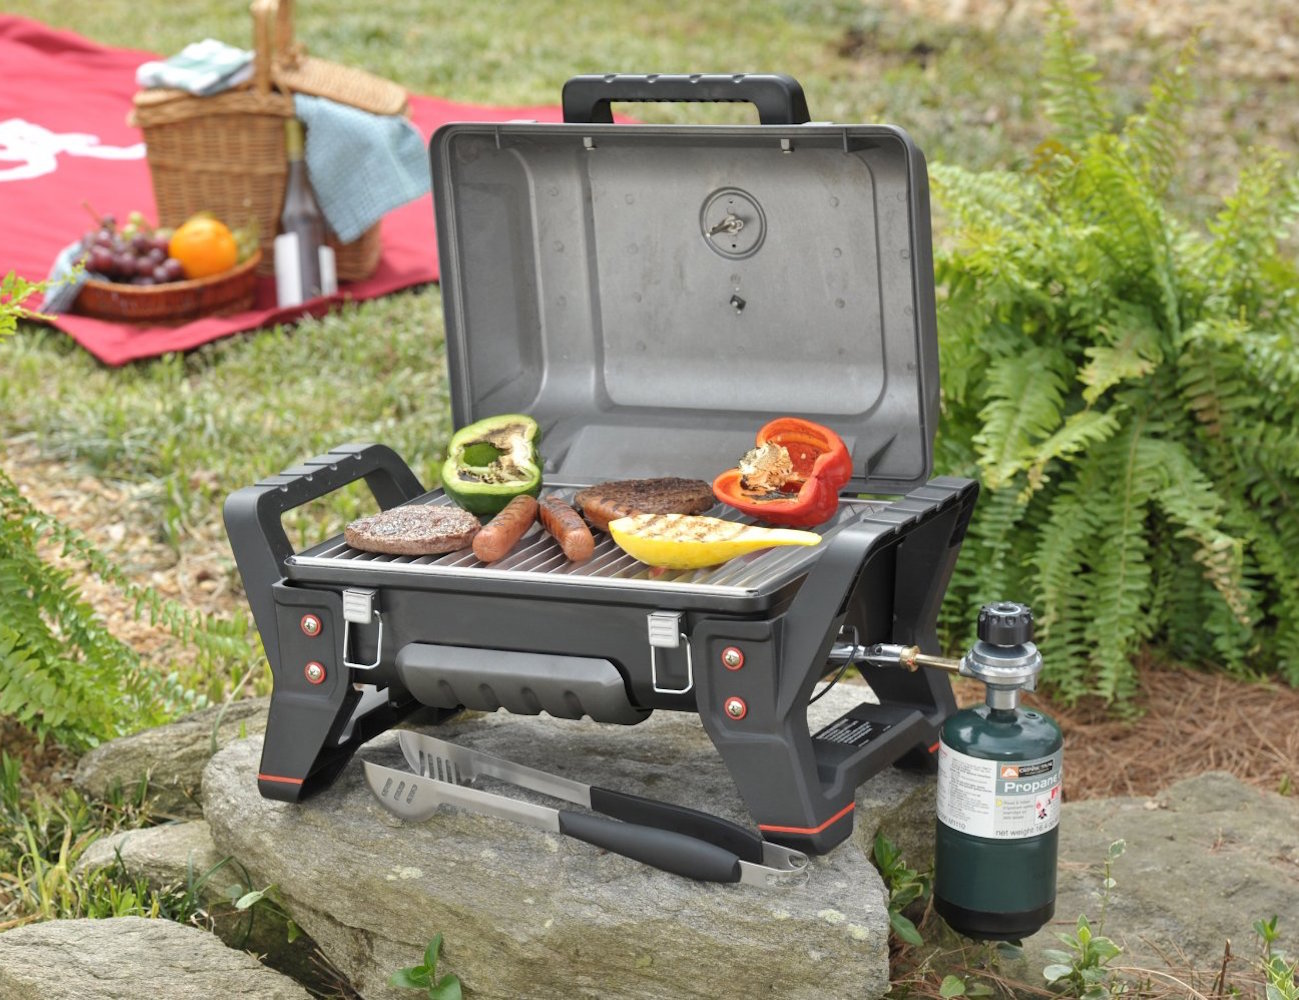 Char-Broil+Grill2Go+X200+%26%238211%3B+Portable+Grill+For+On-The-Go+BBQs